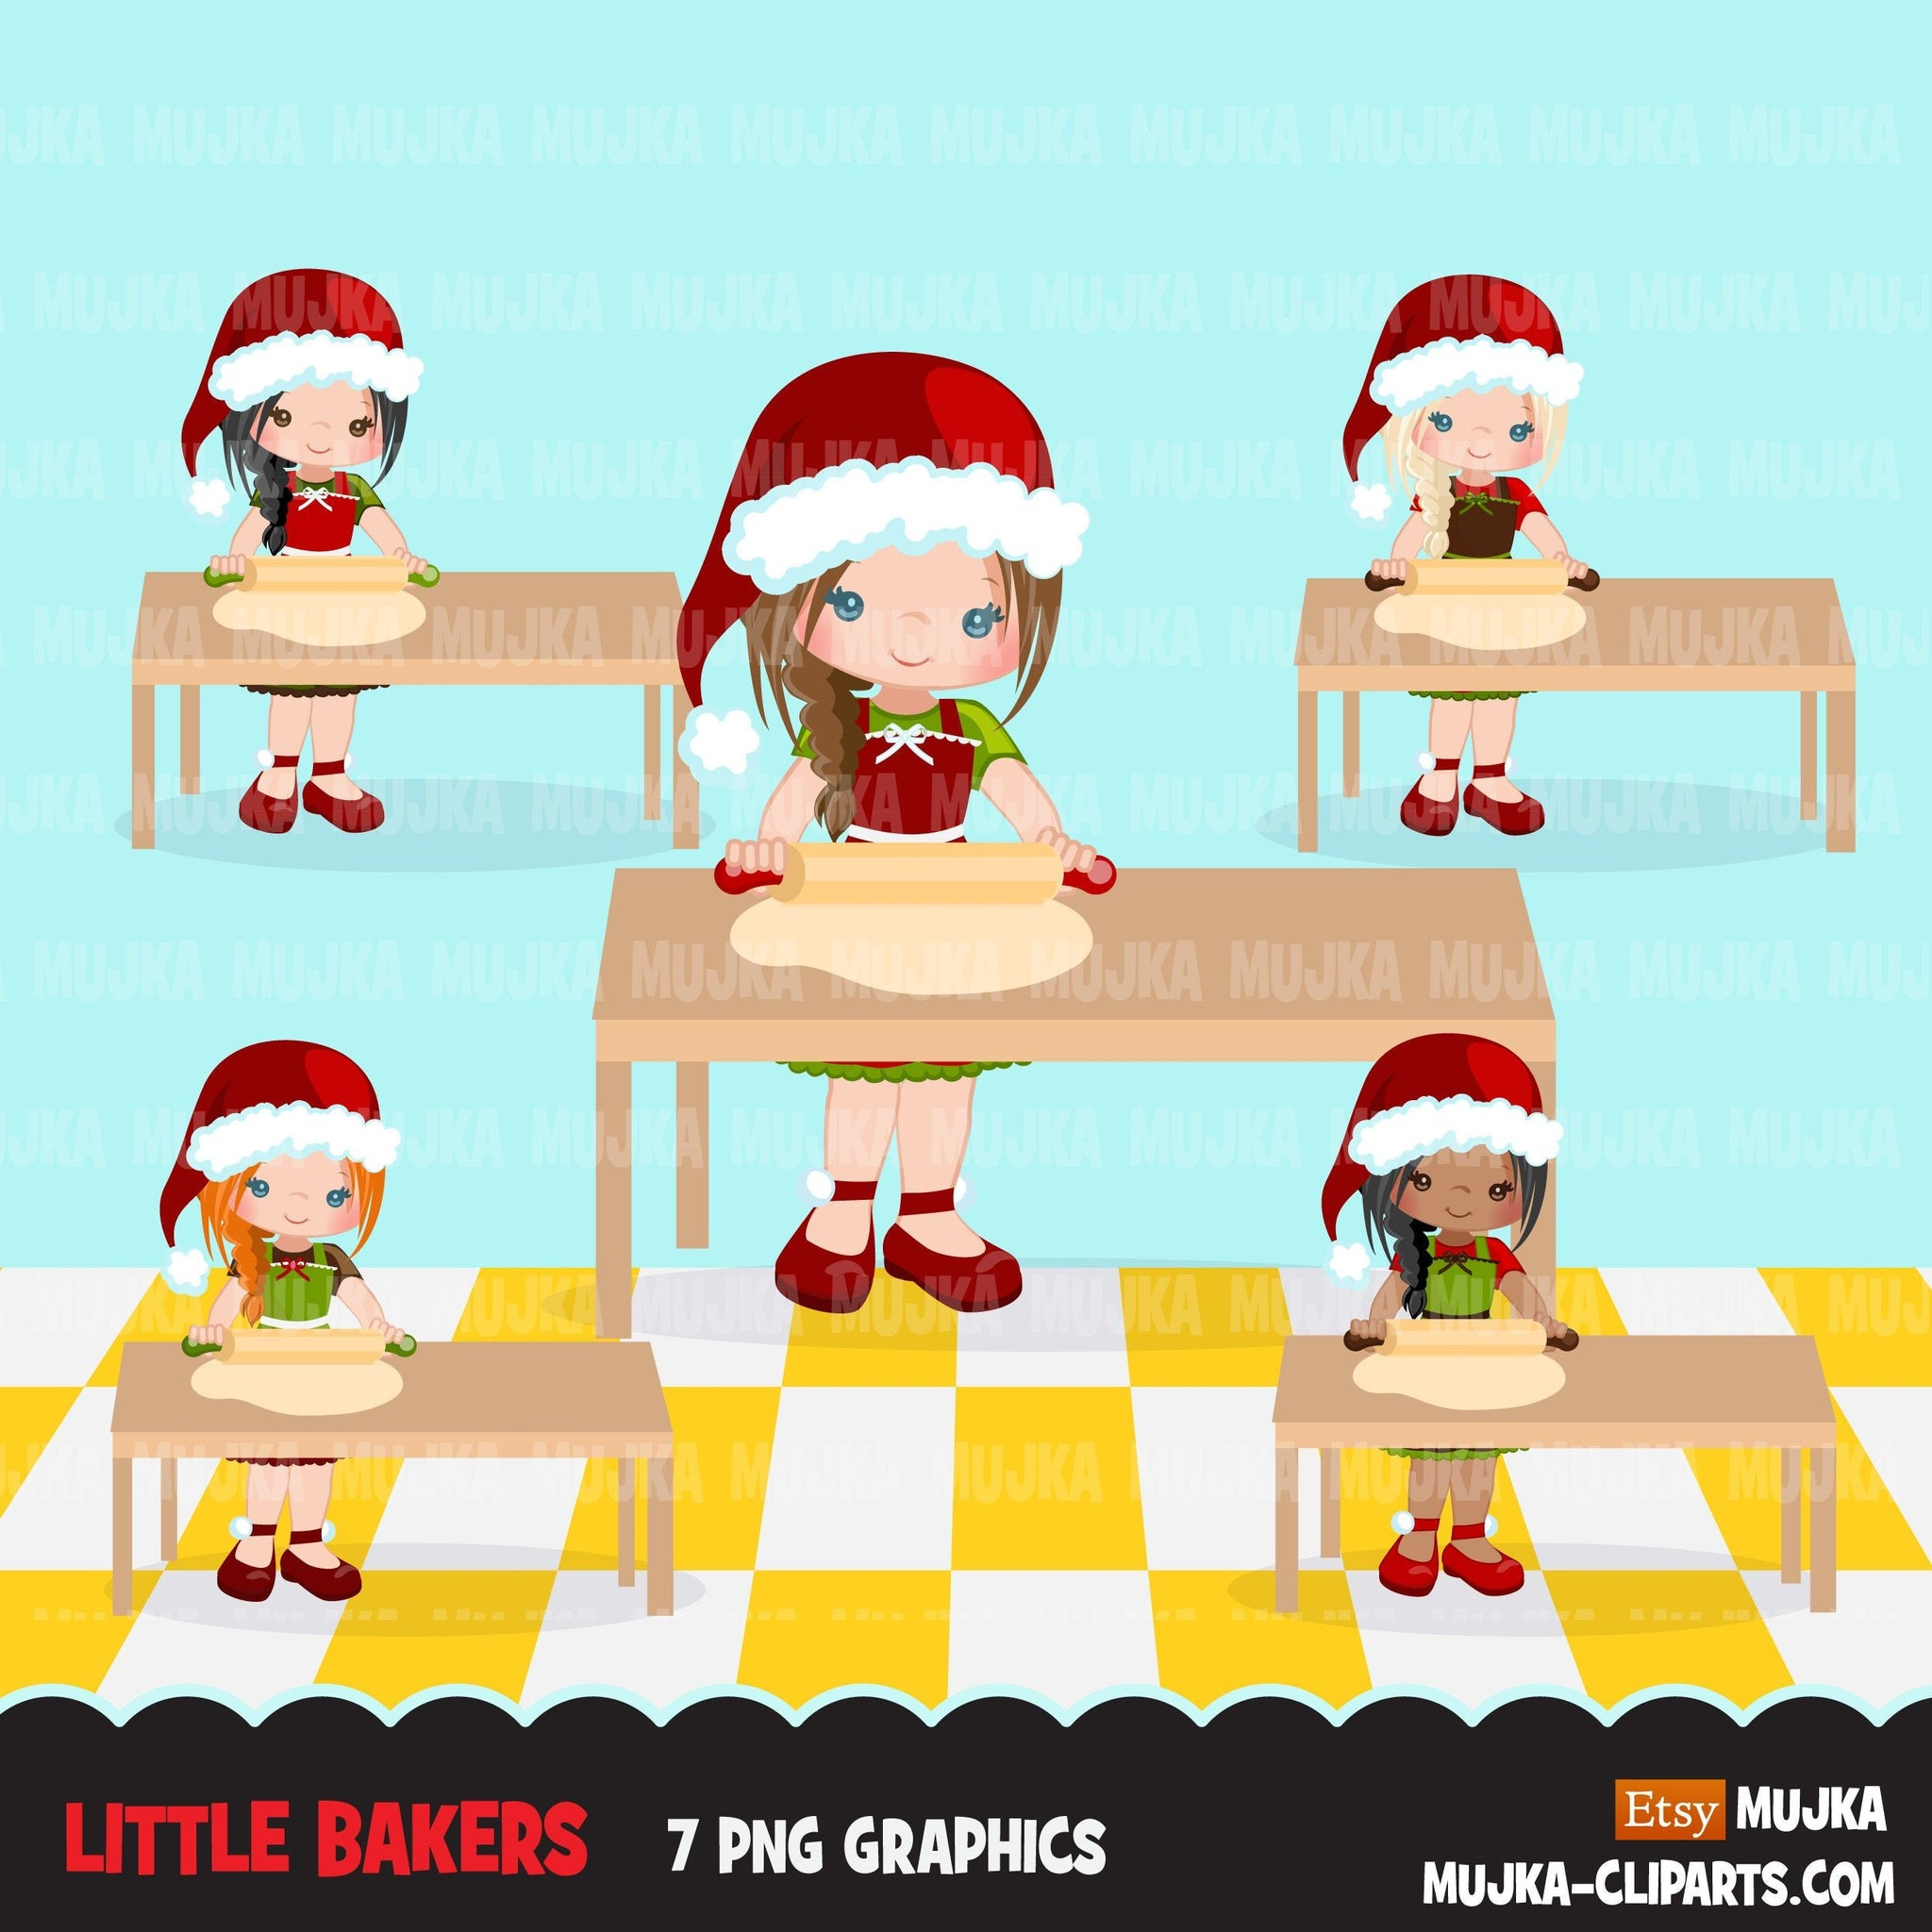 Christmas Baking Clipart Cute baker girl characters, kitchen baking party, rolling pin, pastry chef, cookie graphics, baking fun clip art